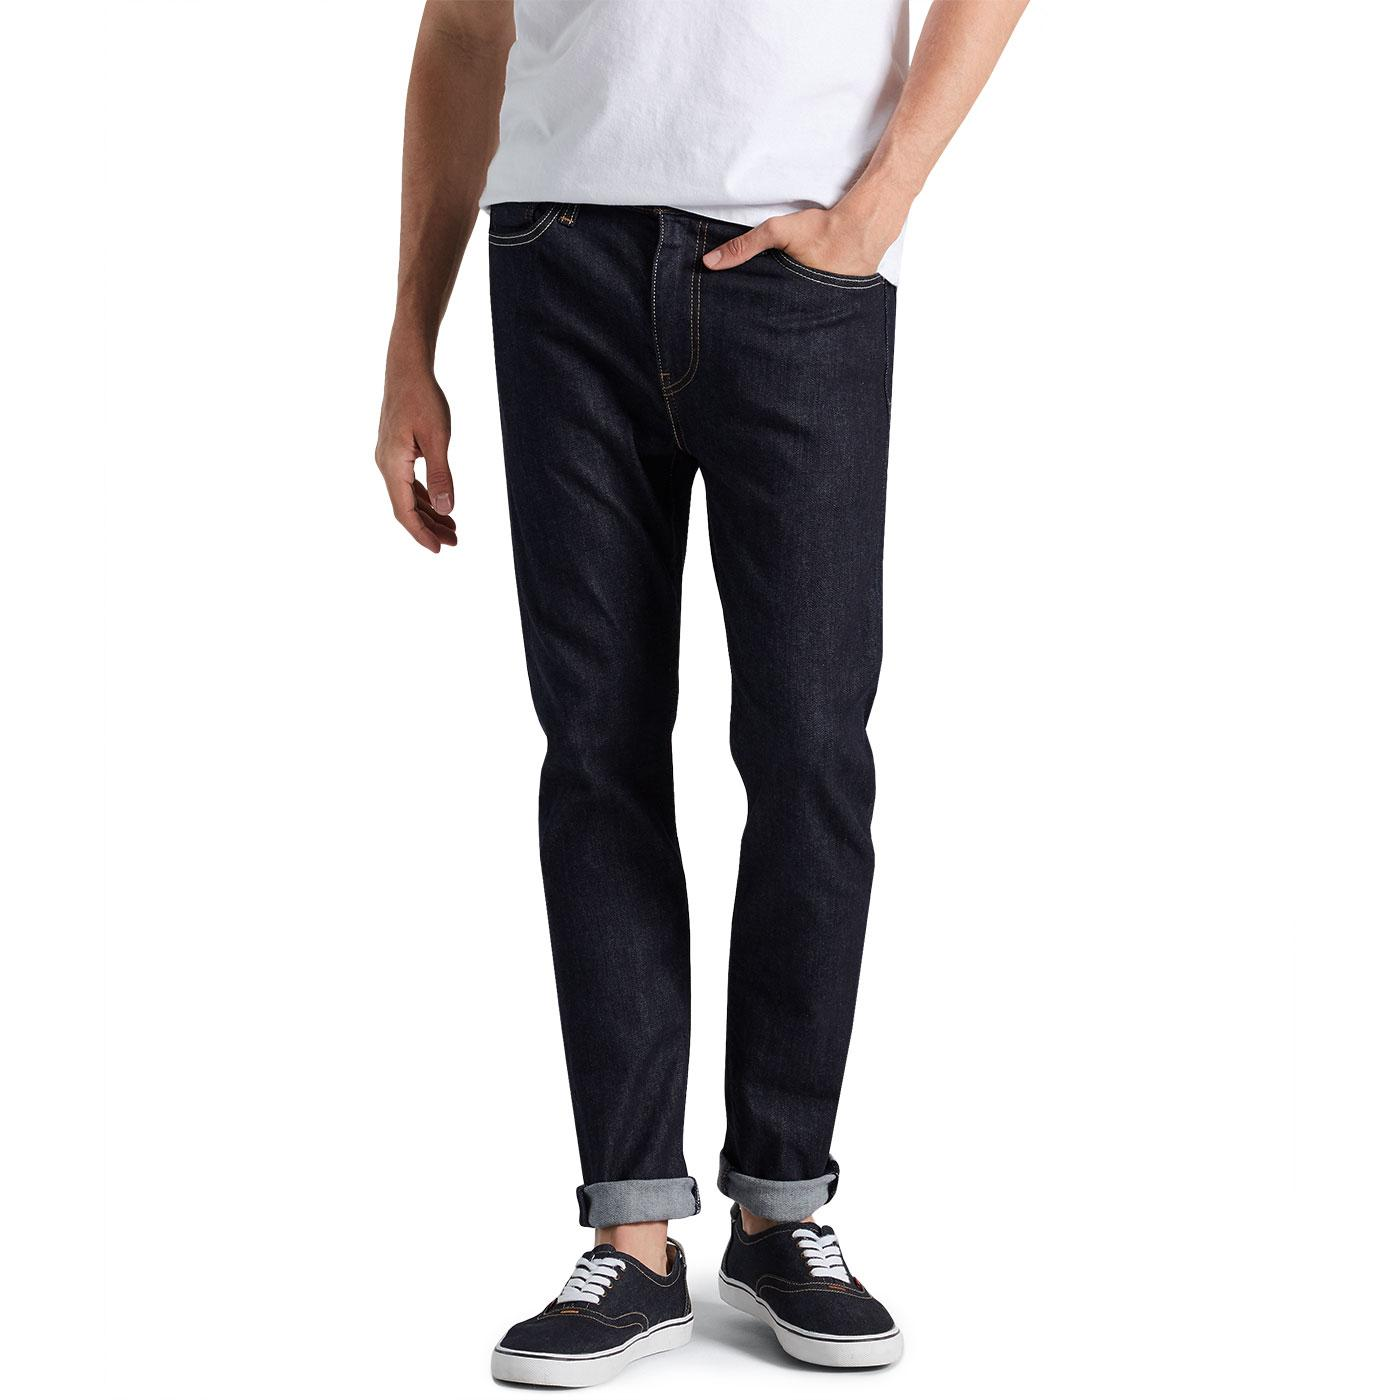 LEVI'S 510 Men's Retro Skinny Jeans CLEANER ADV.